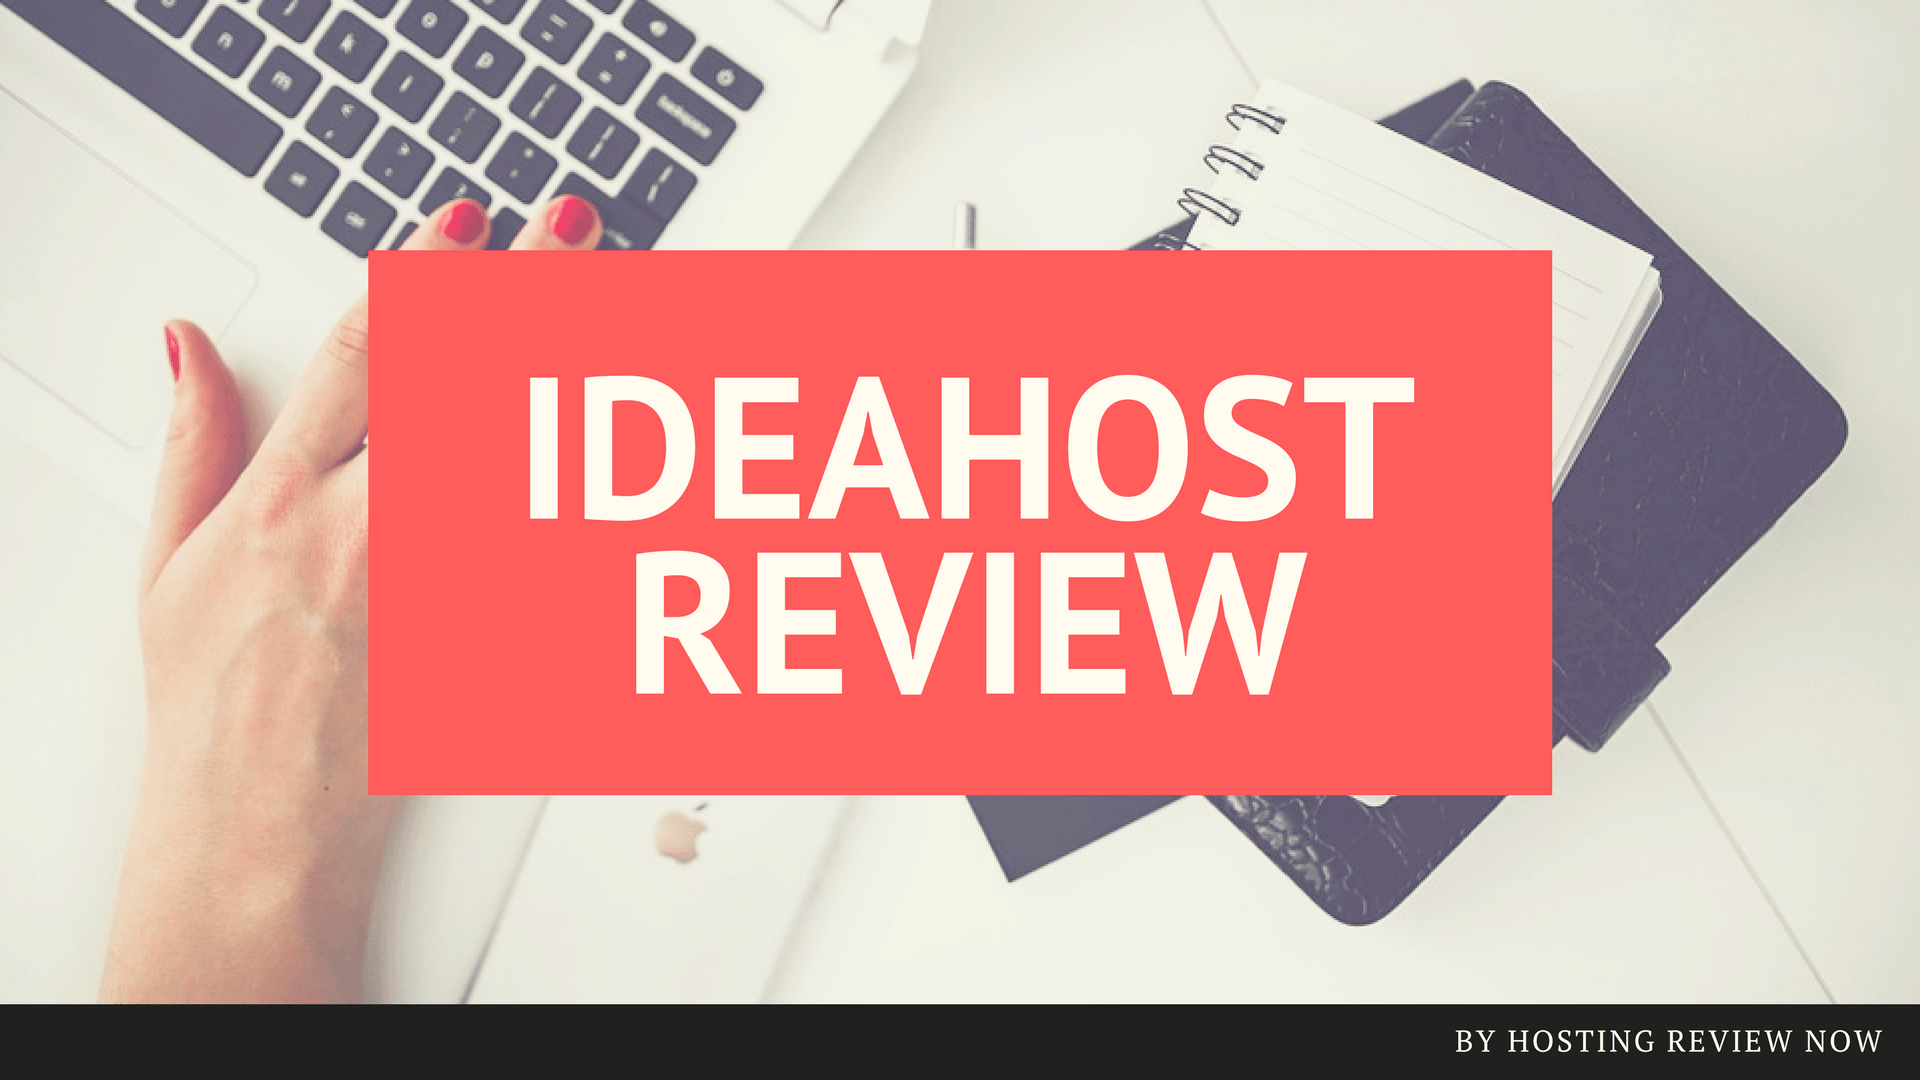 Ideahost Review